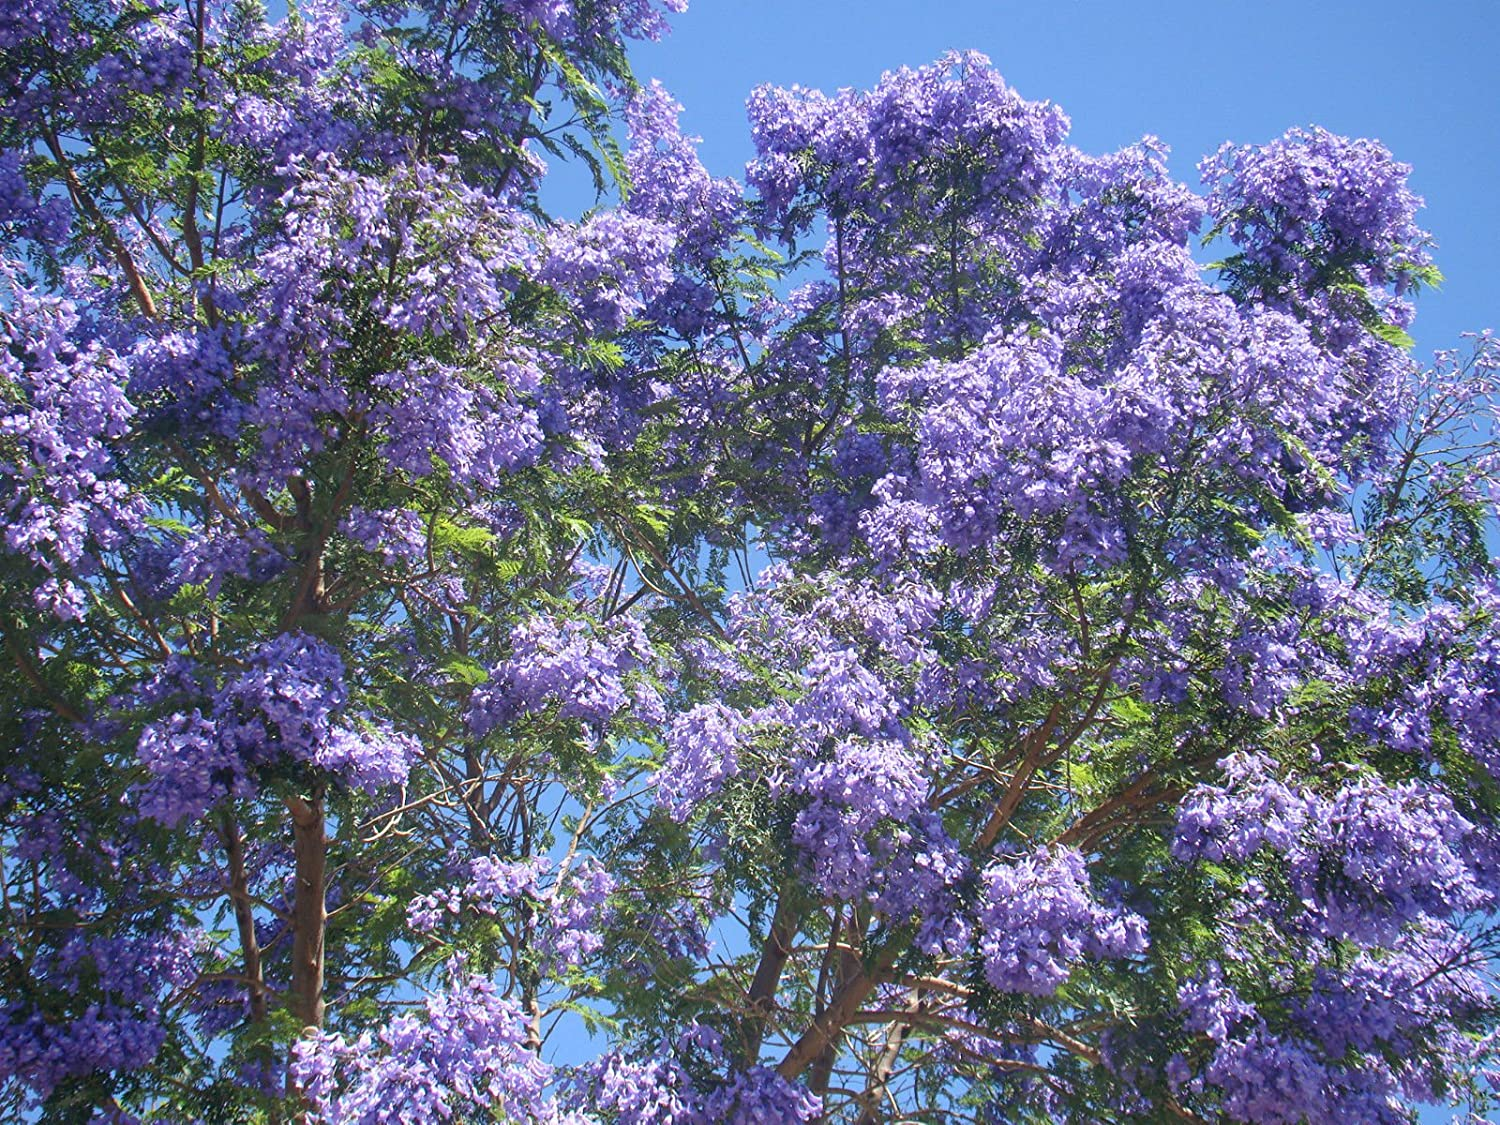 Blue jacaranda tree jacaranda mimosaefolia plant seedling fern like blue jacaranda tree jacaranda mimosaefolia plant seedling fern like foliage blue flowers amazon garden outdoors izmirmasajfo